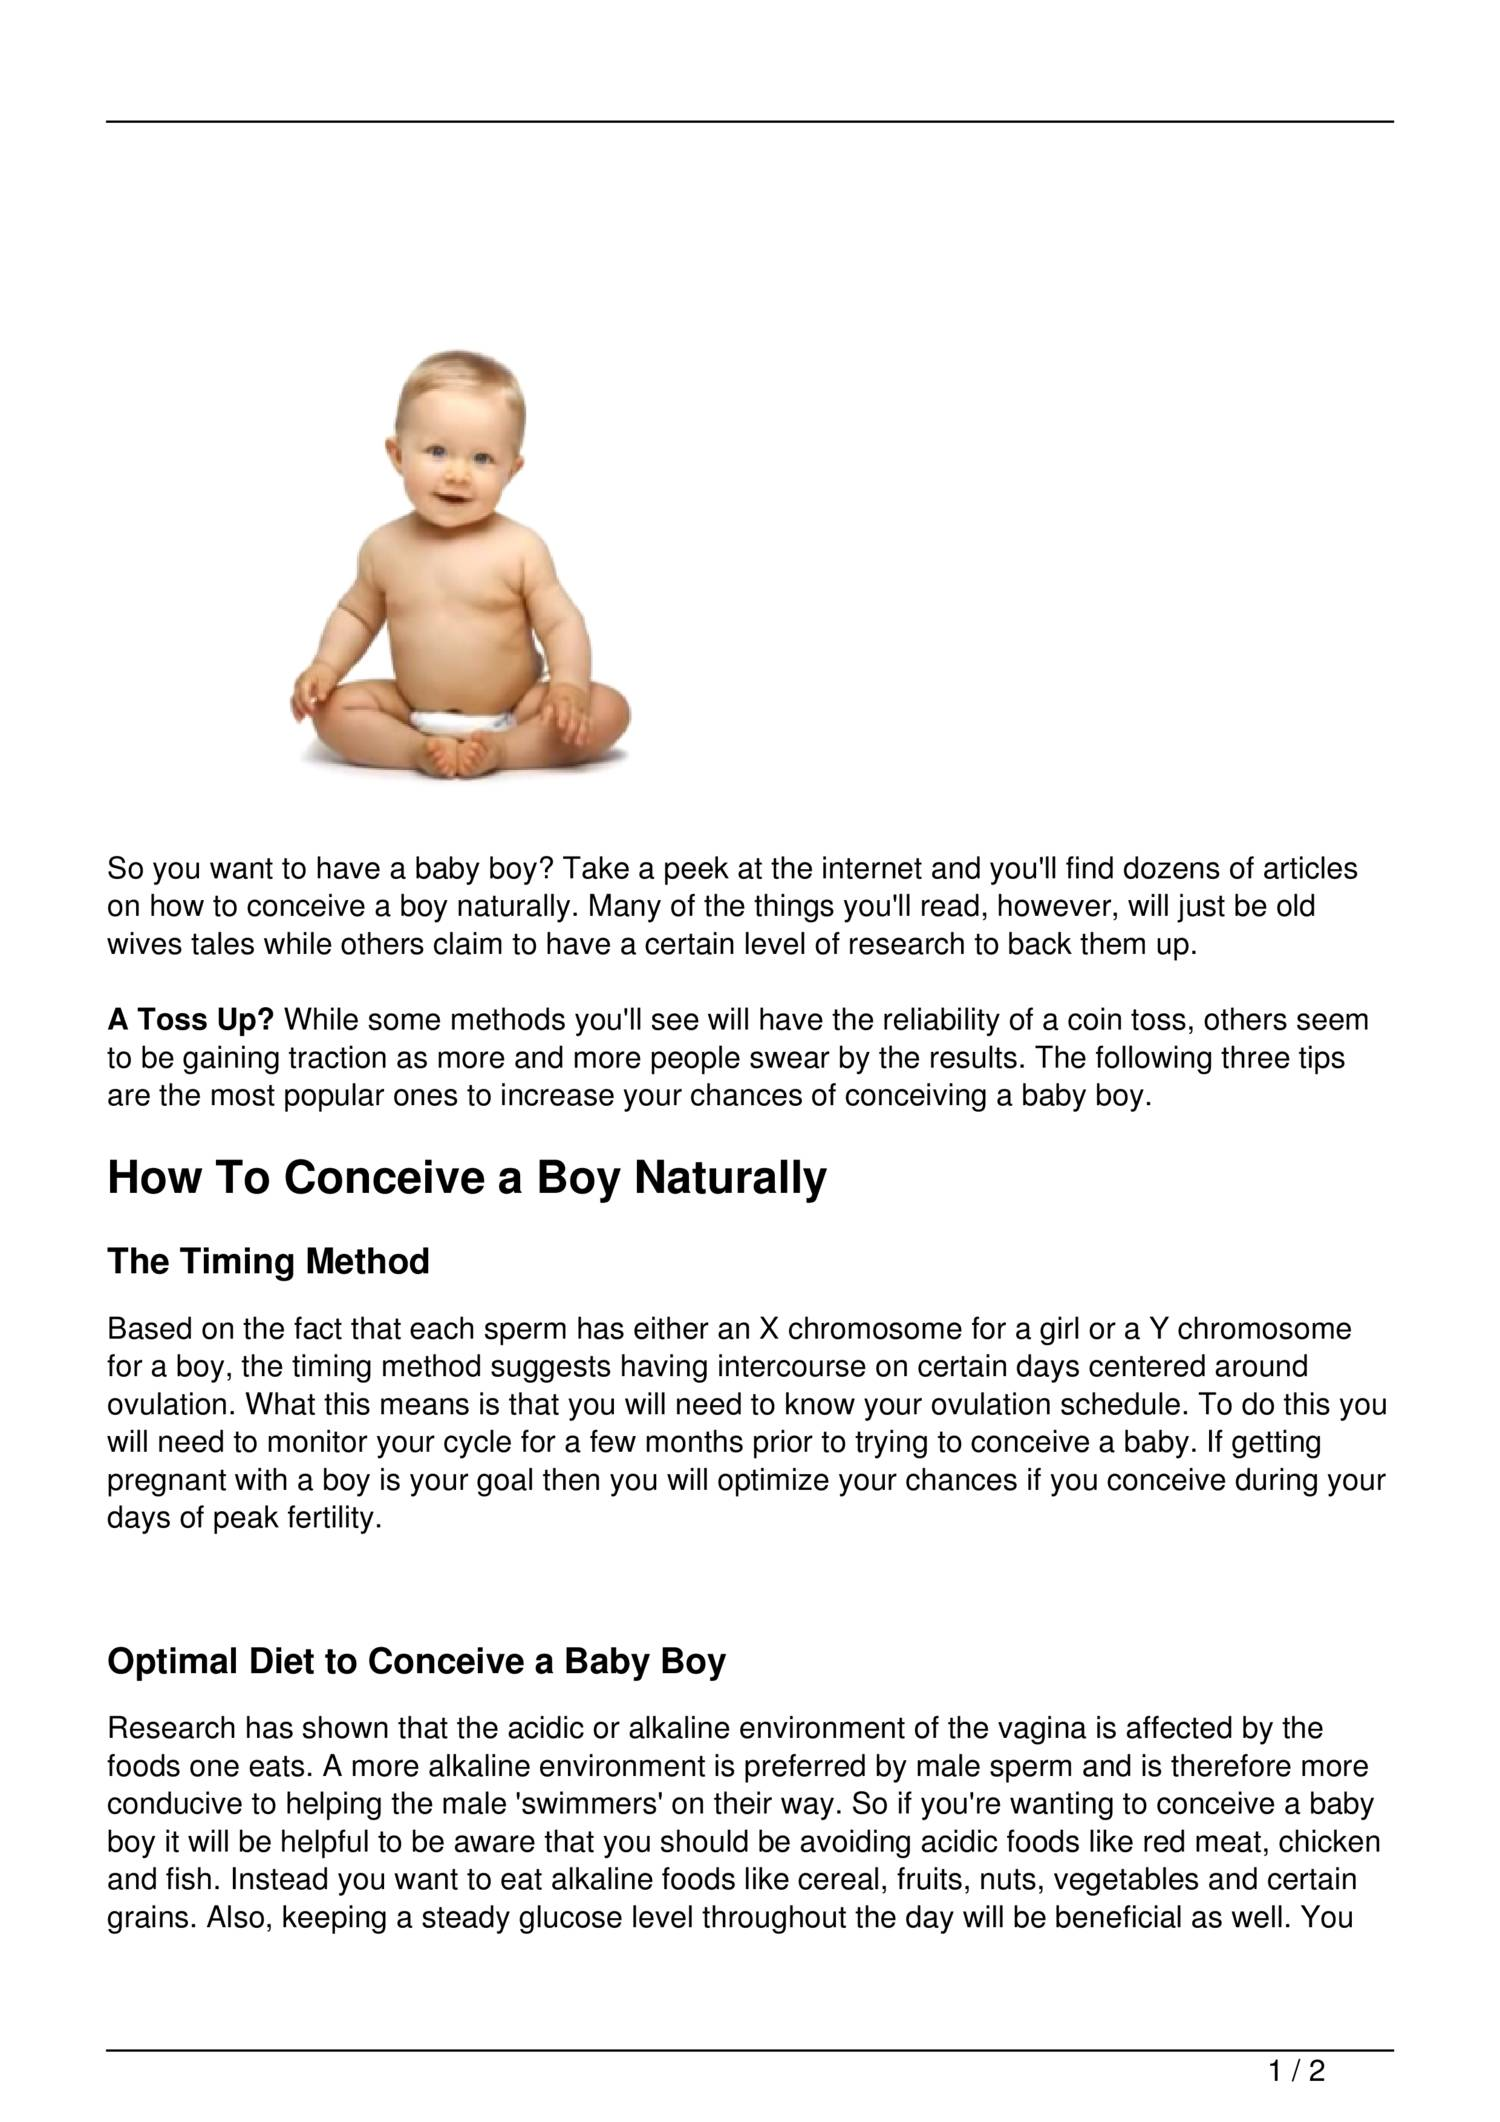 Best Way To Conceive A Boy Naturally